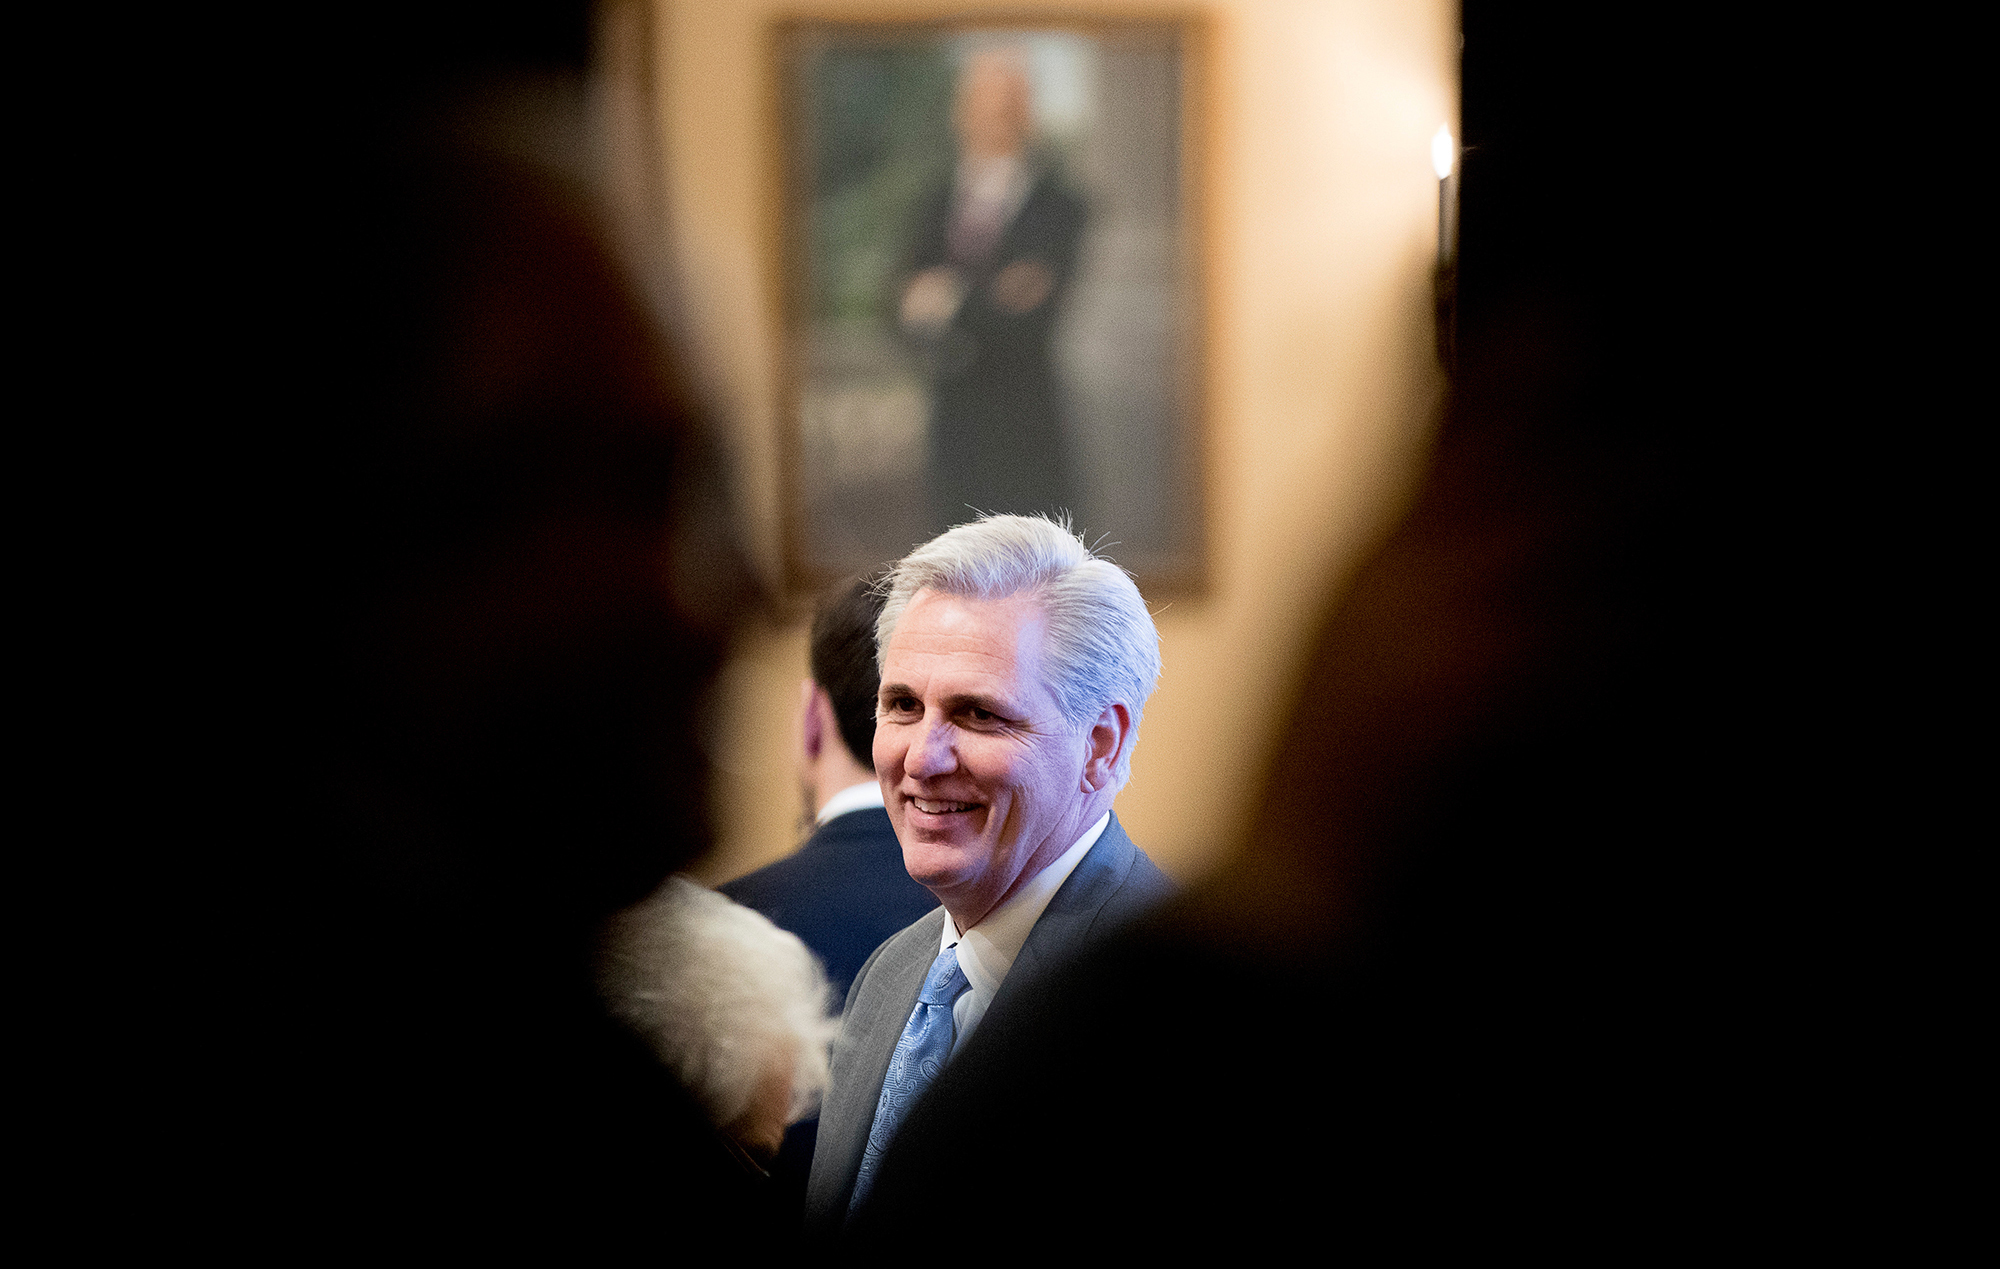 In House Majority Leader's Home District, Many Depend On Health Law He Wants To Scrap